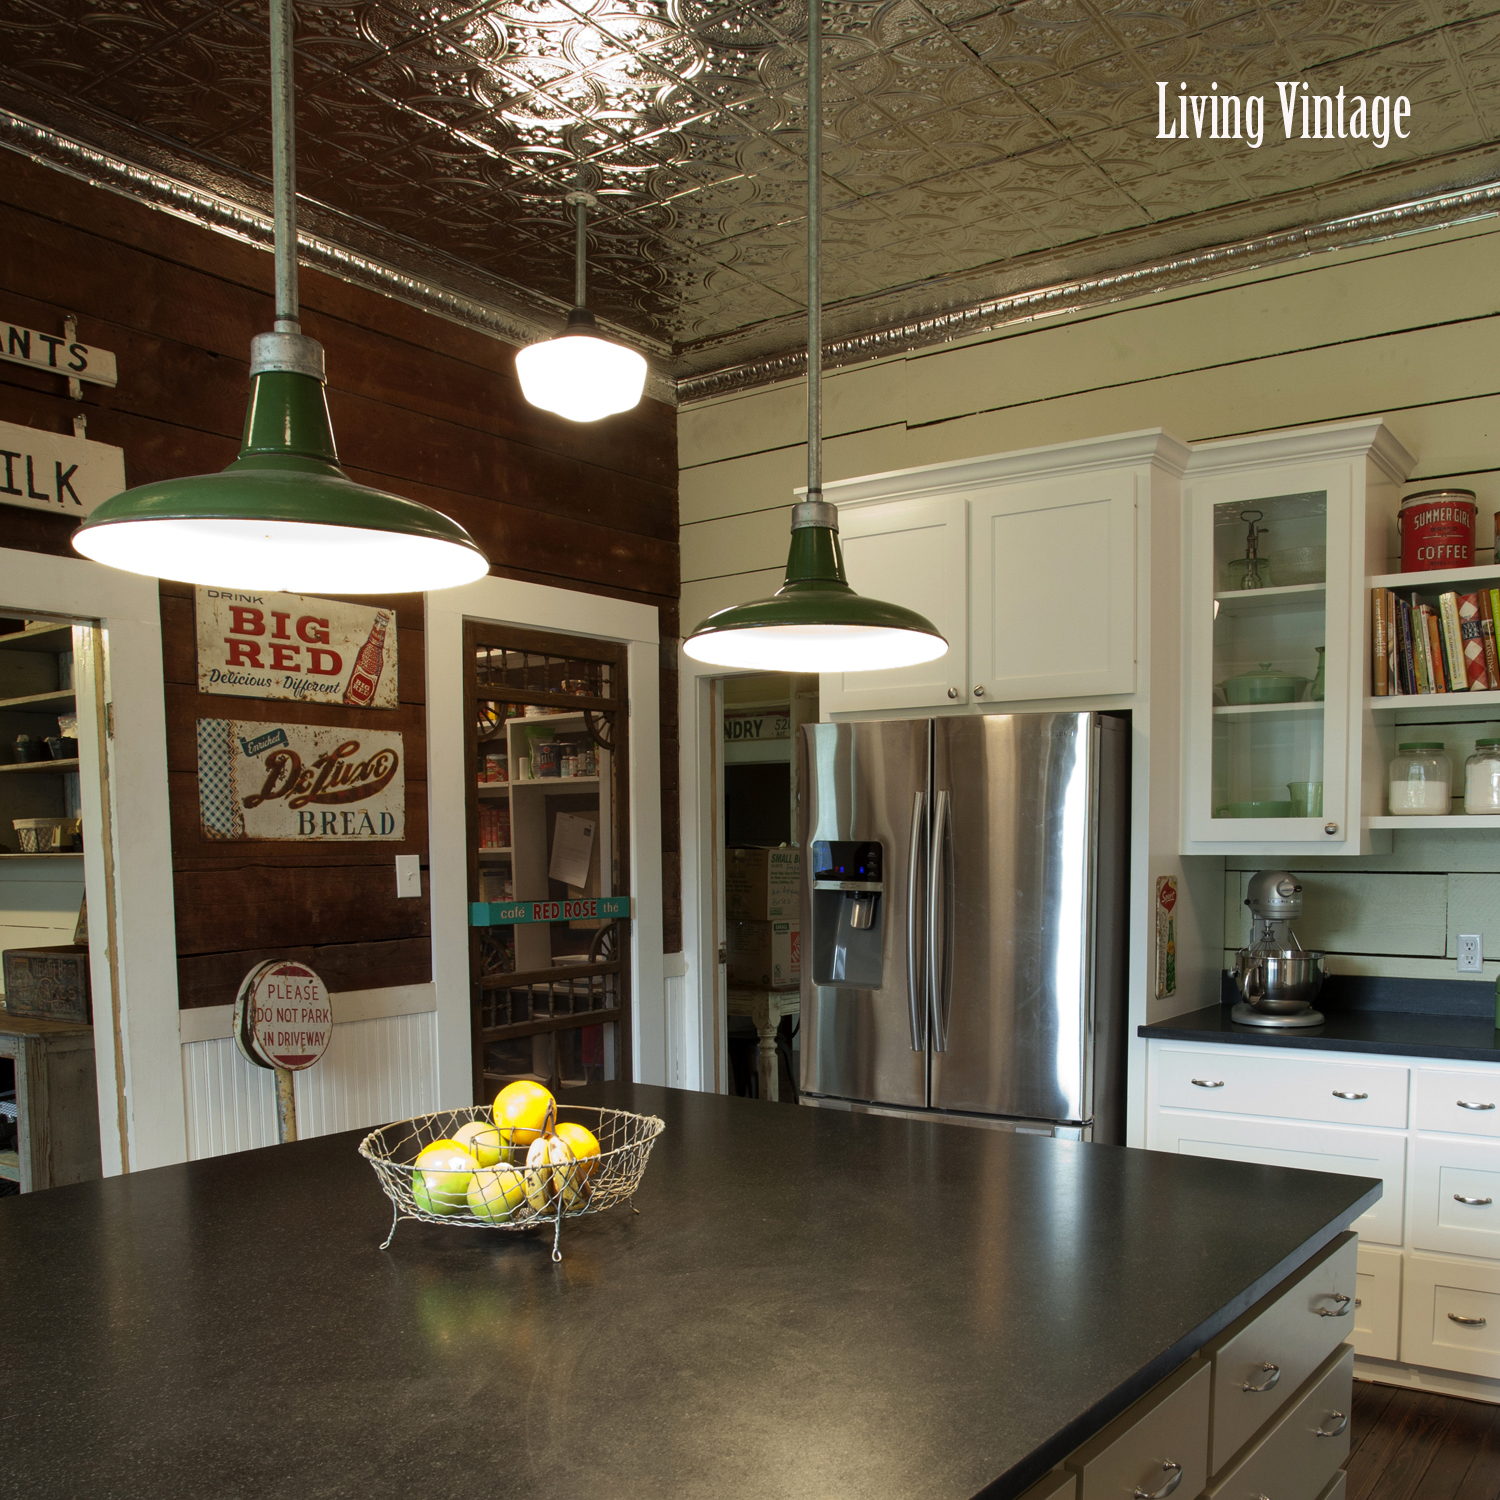 Living Vintage kitchen reveal - view towards pantry and dogtrot